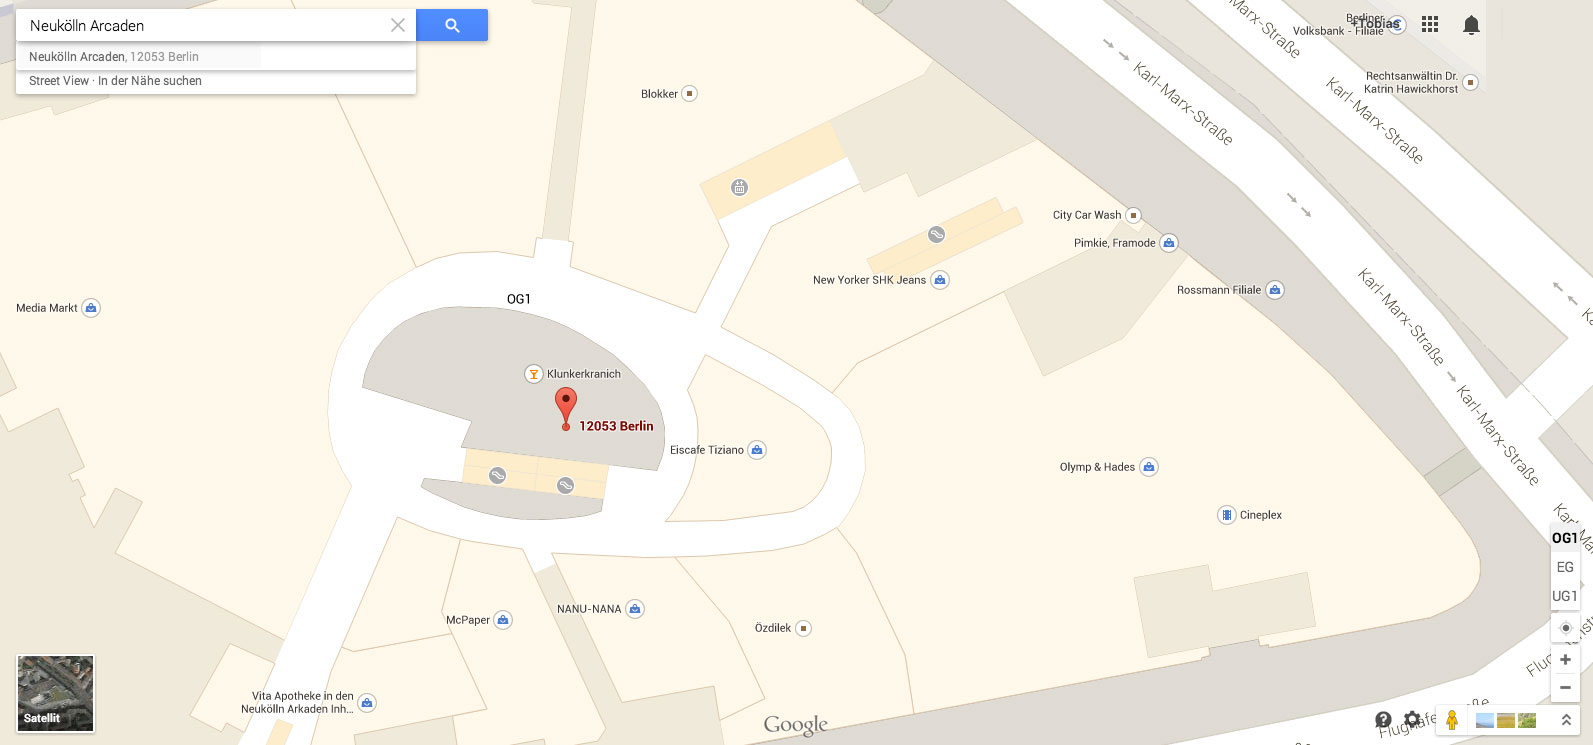 Google-Indoor-Maps